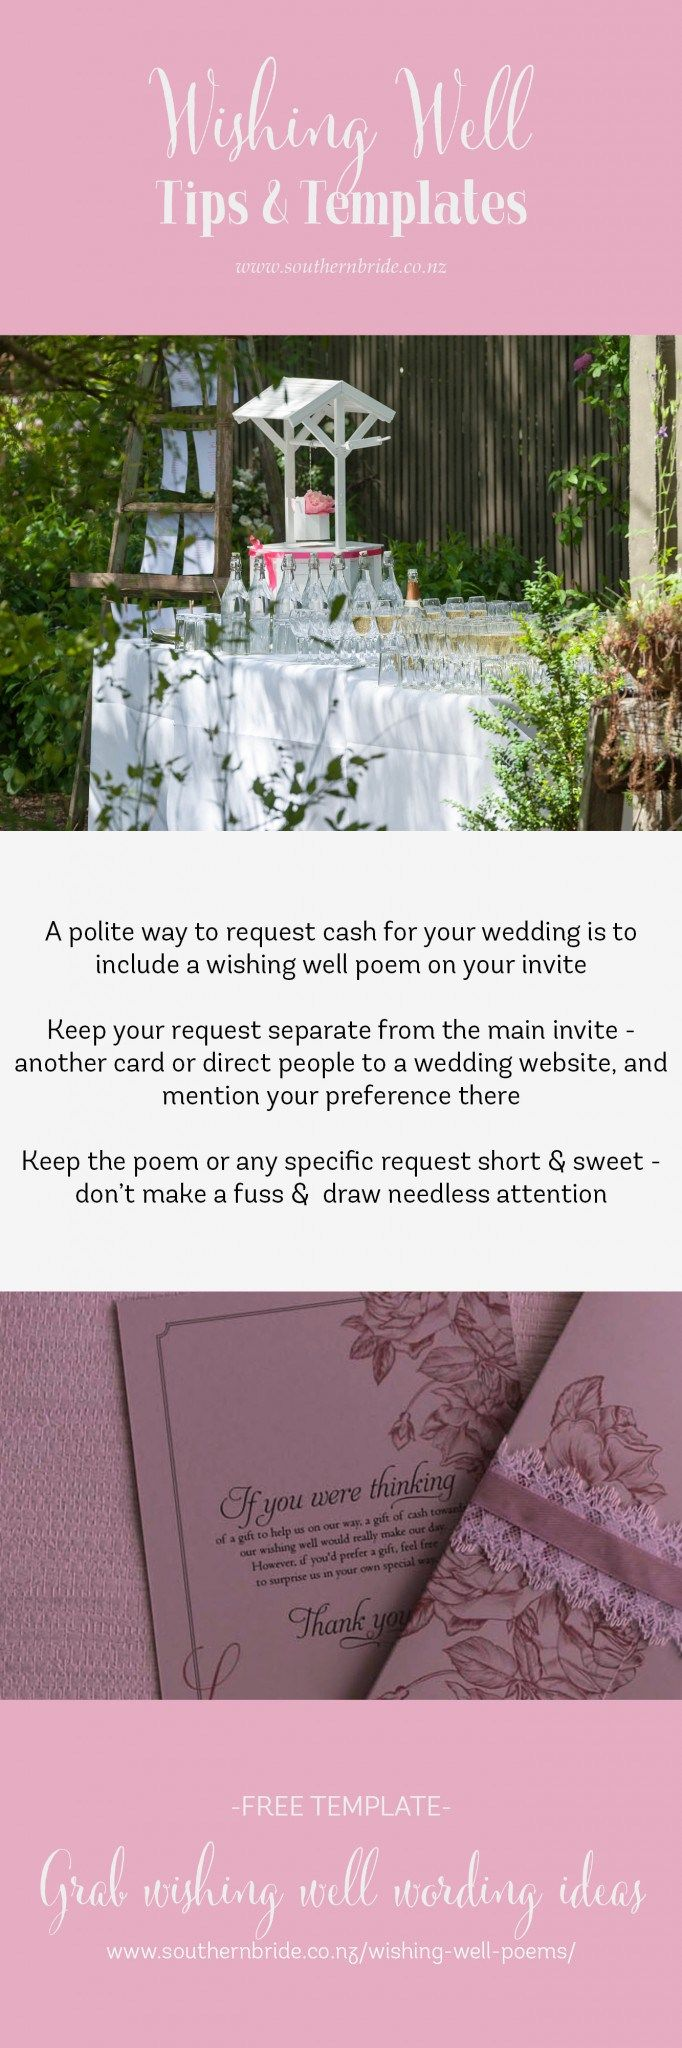 no gift wording for wedding invitations%0A How to word that you have a Wishing Well for your wedding gift http